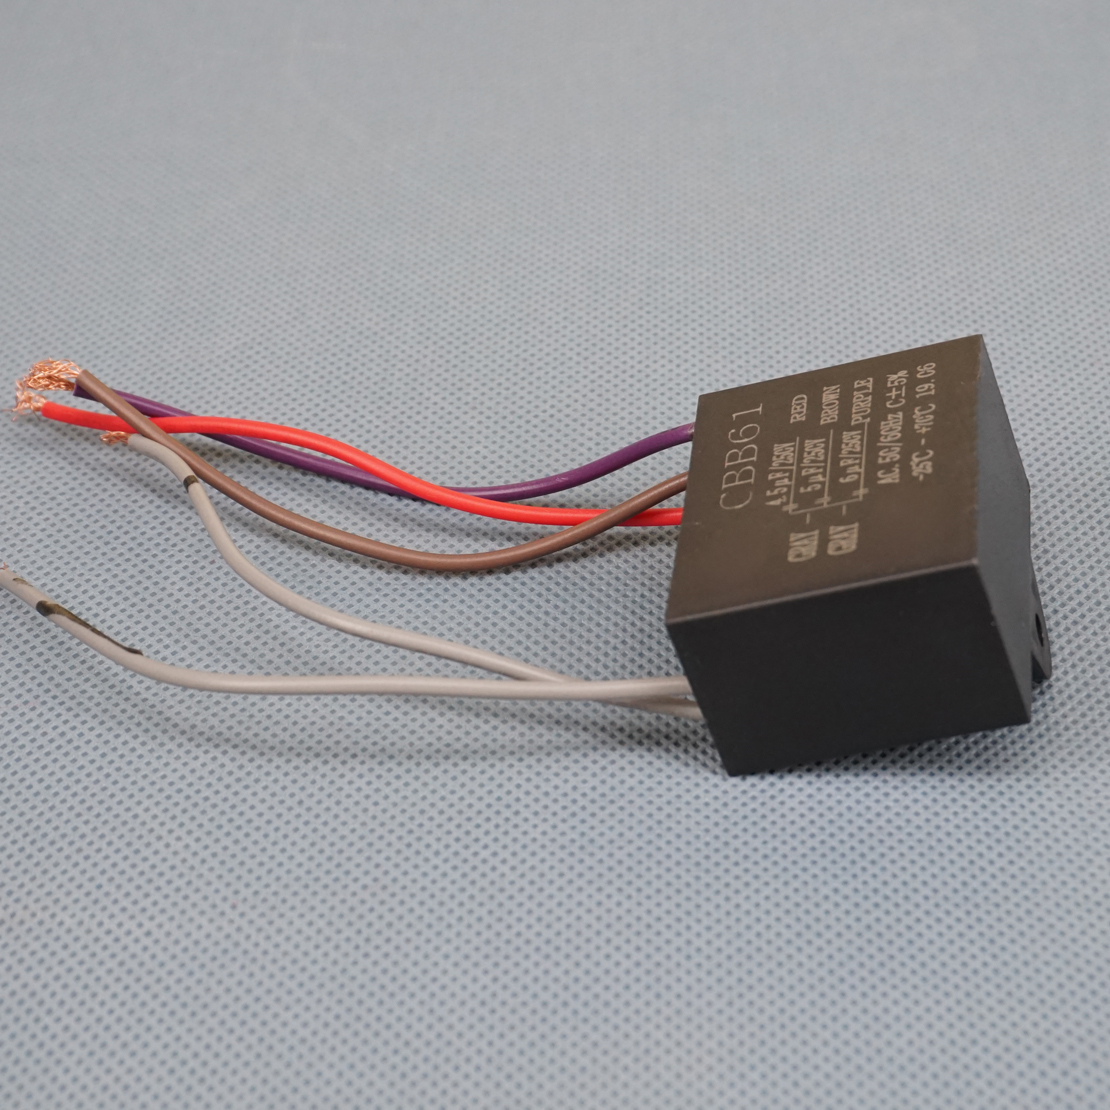 Cbb61 45uf 5uf 6uf 4 Wire 250vac Electric Fan Capacitor Type Control Wiring 6 Capacitors The Start And Stop Mechanisms Speeds On Many Different Types Of Ceiling Fans Motors Using These